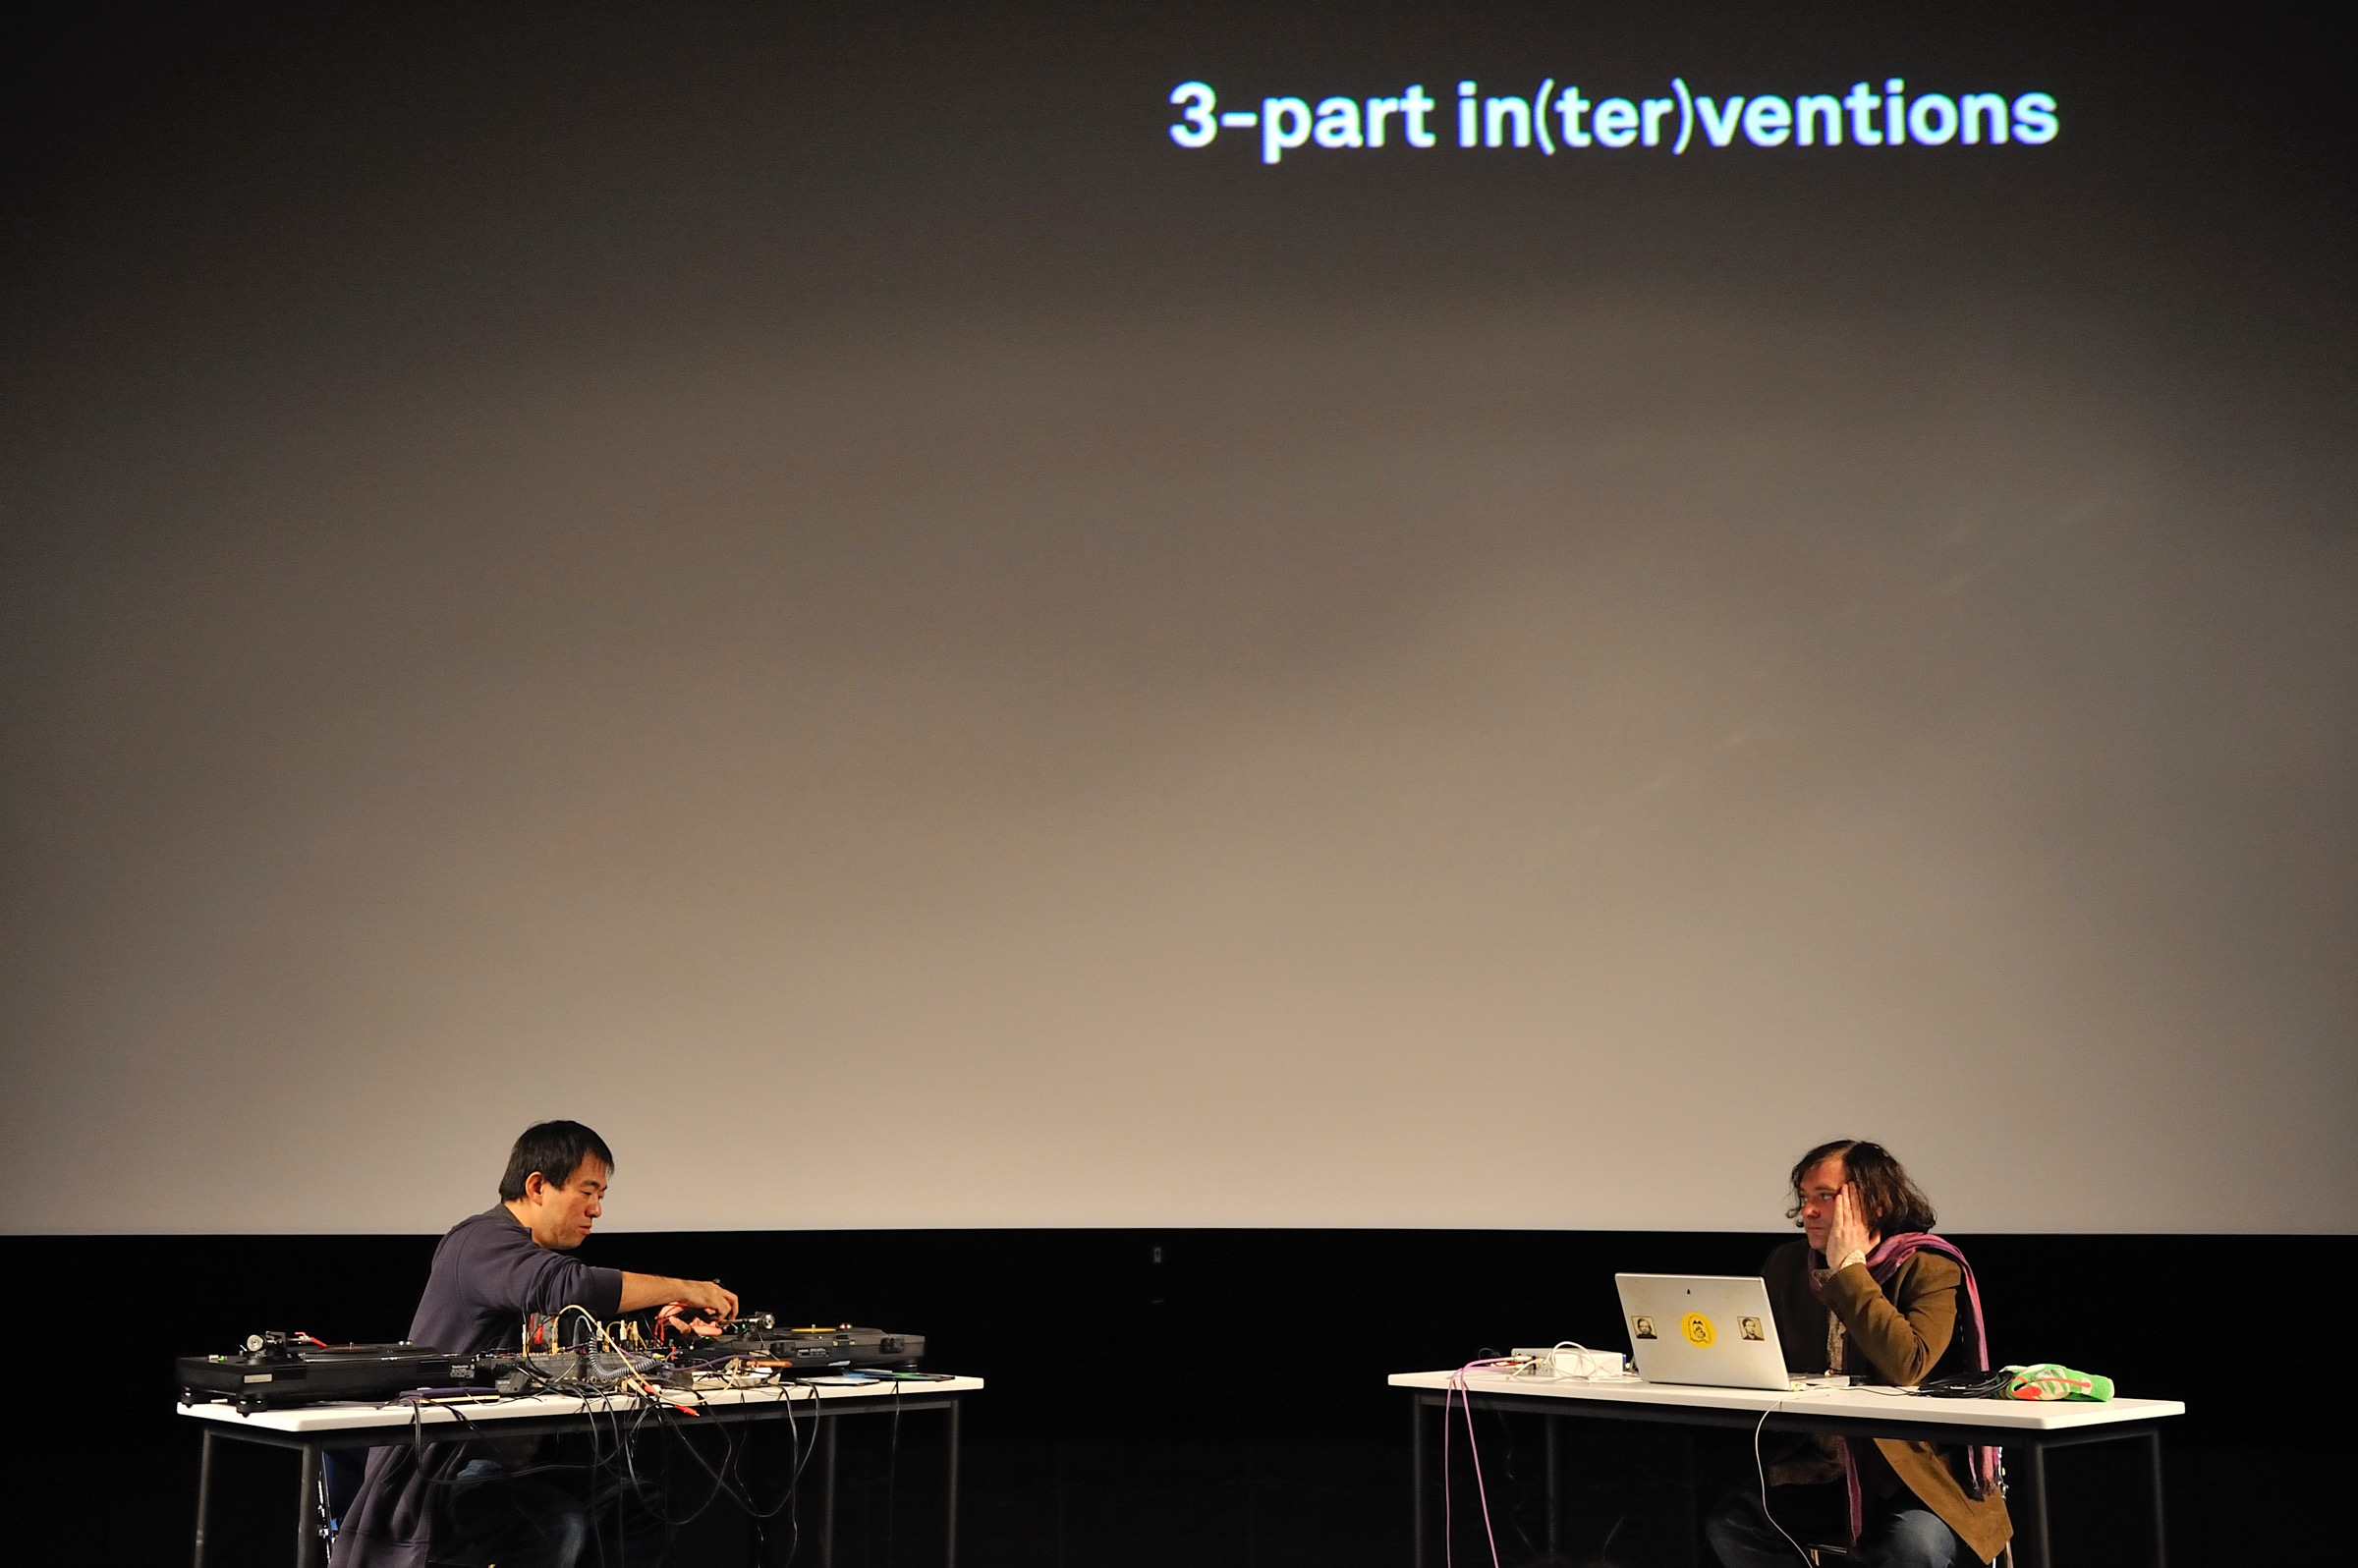 3-part-interventions_091122_001